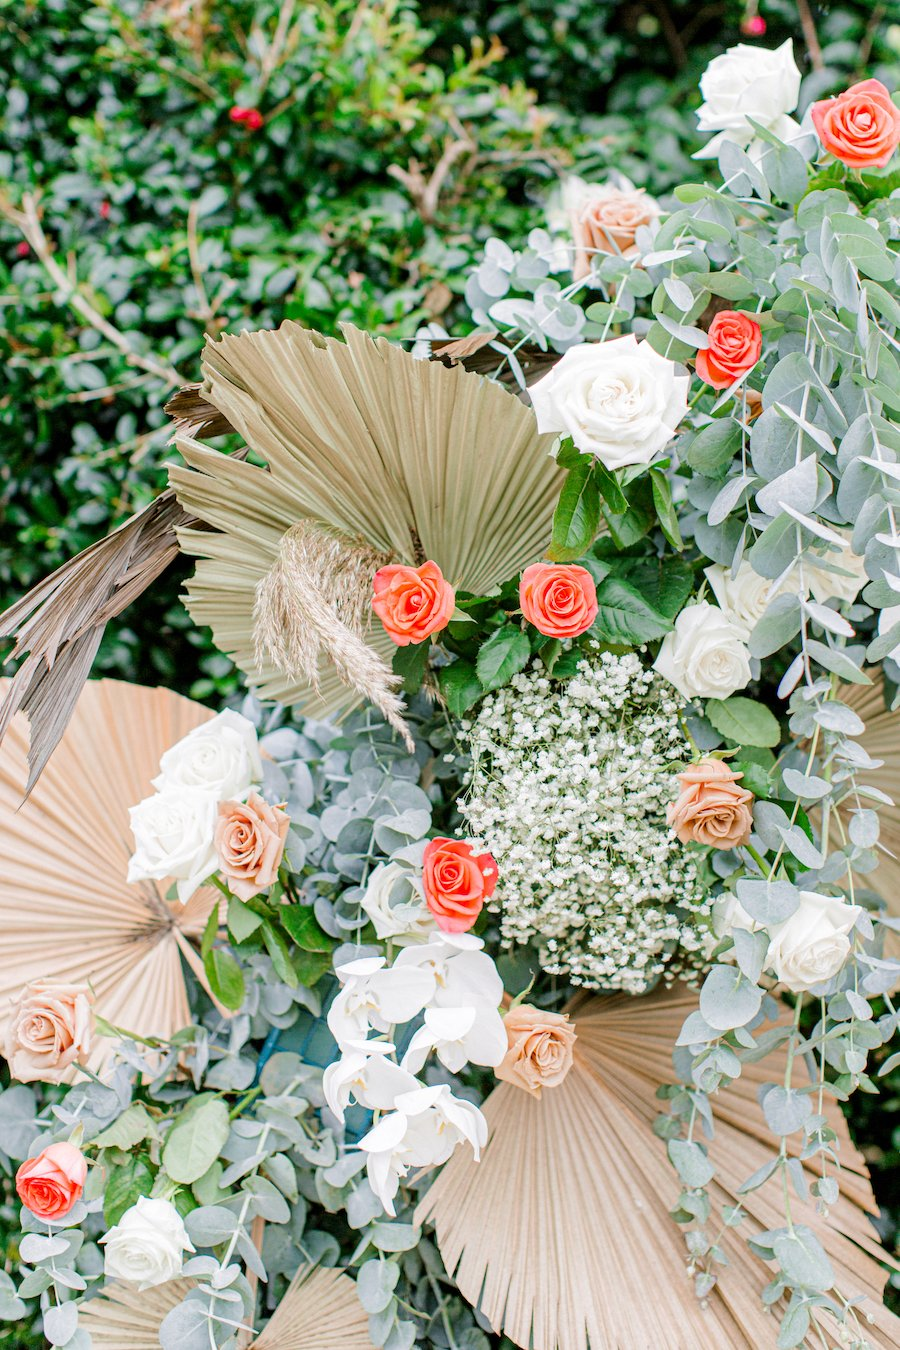 Weddings with flowers and dried foilage